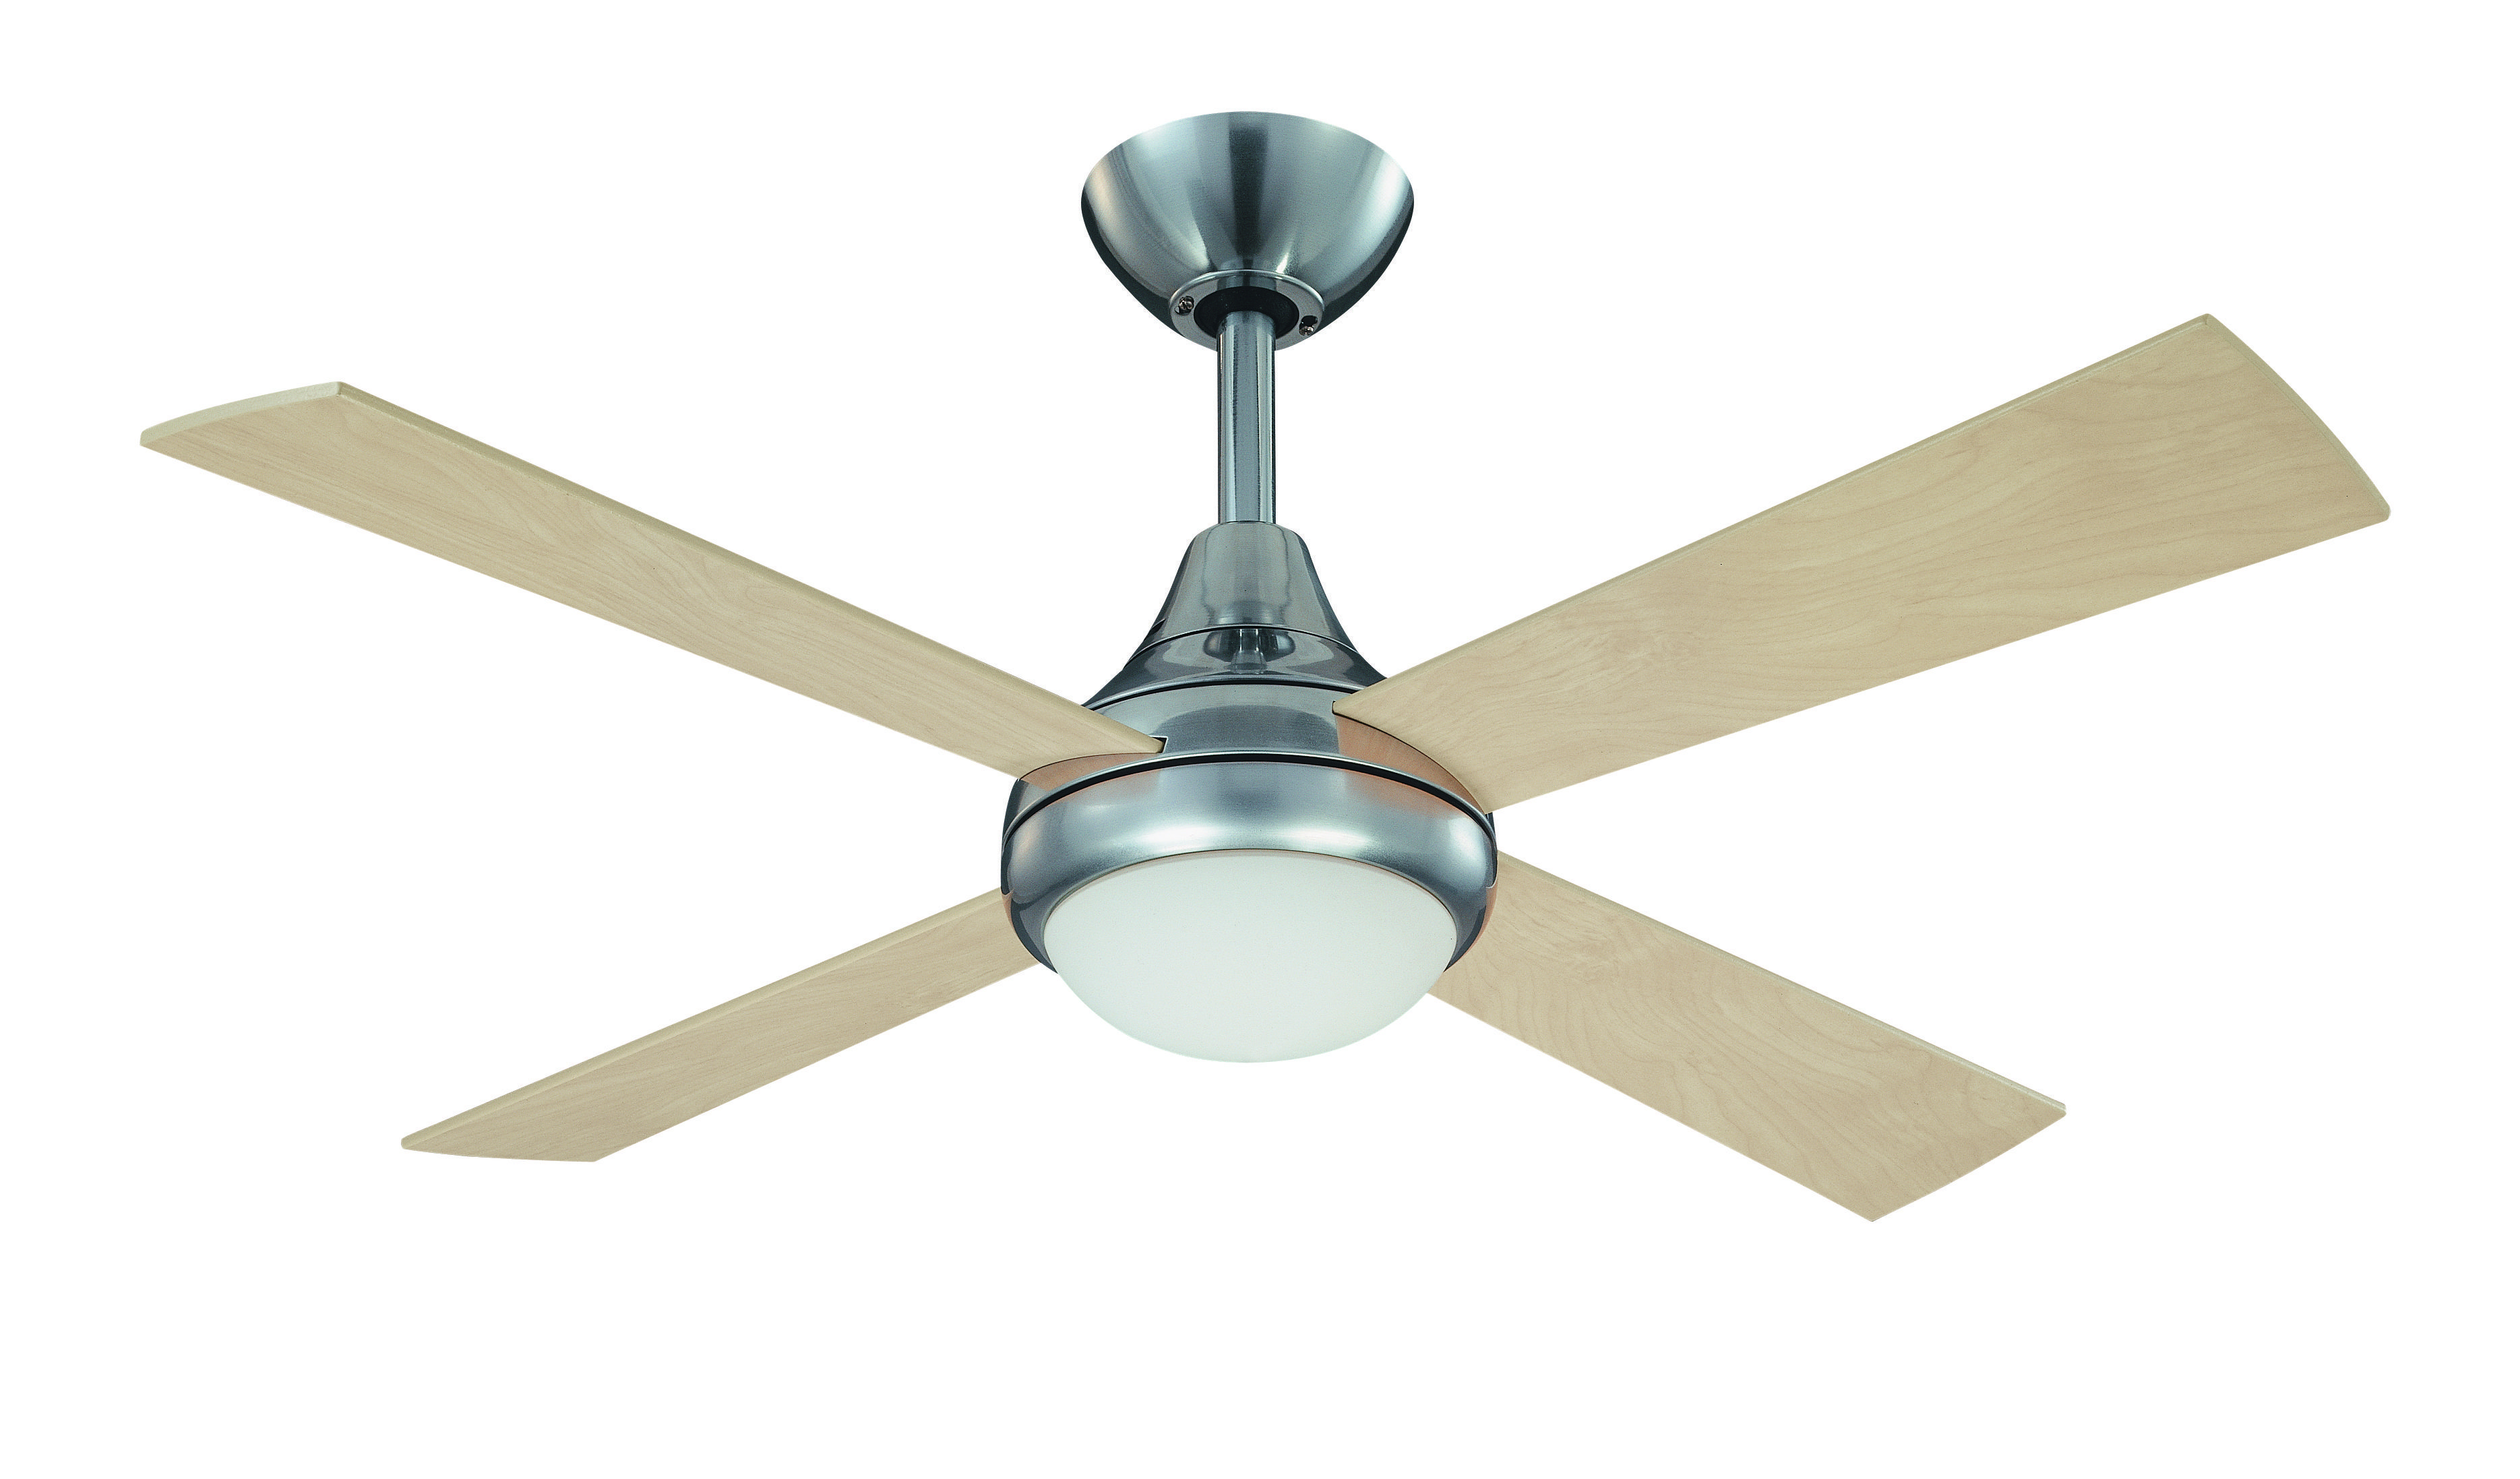 kit hunter fans wholesale remote control apache market blog simpleconnect summary ceiling fan hansen